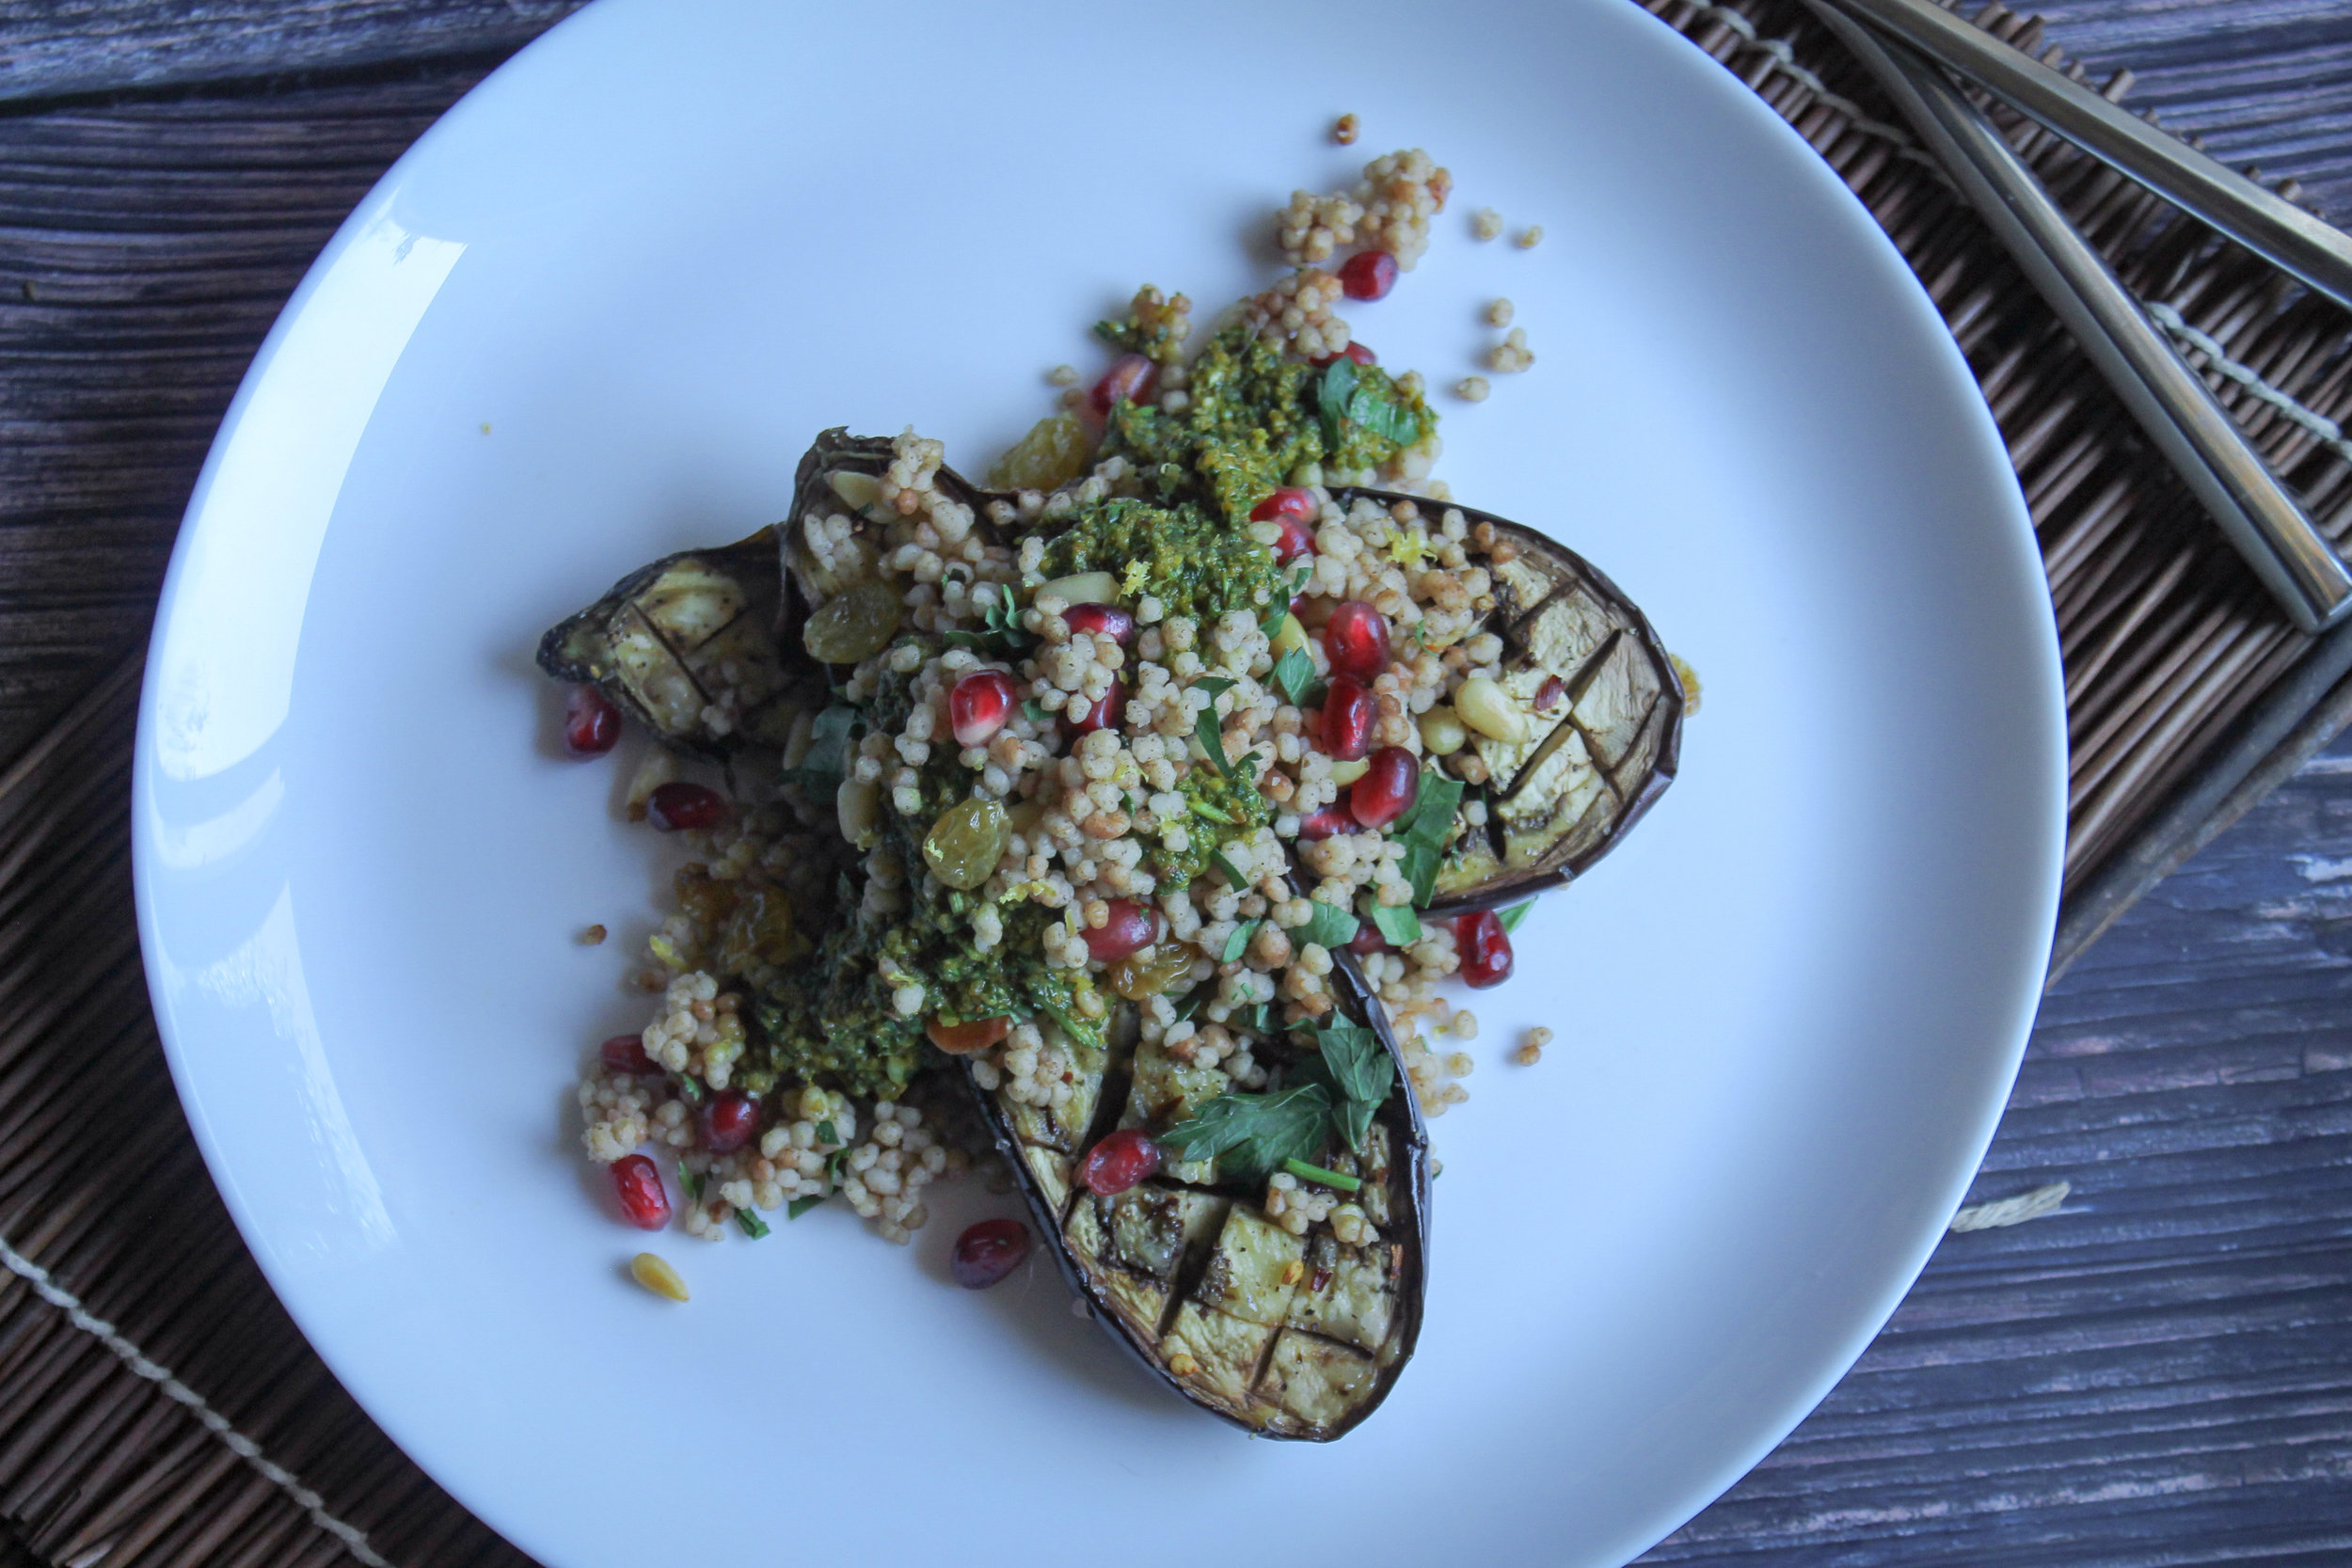 Stuffed Roasted Eggplant with Moroccan Couscous